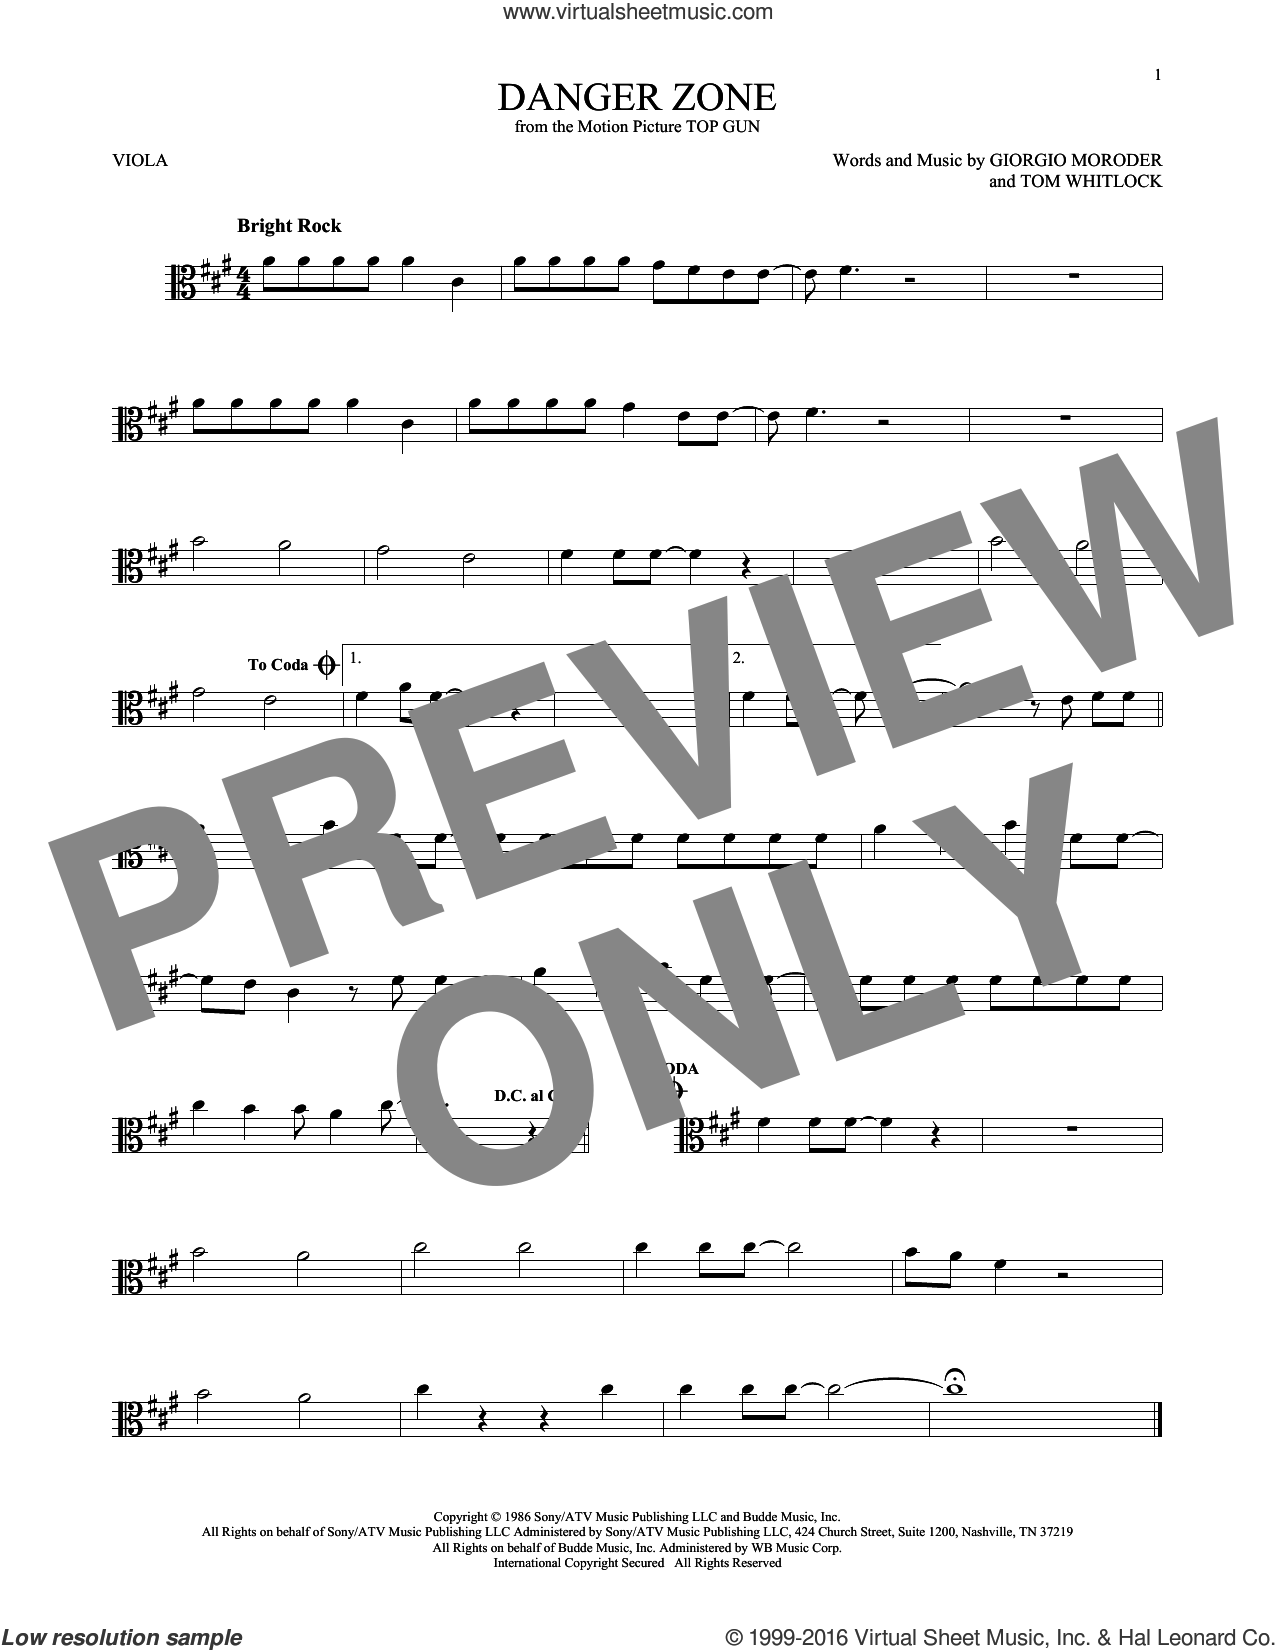 Danger Zone sheet music for viola solo by Kenny Loggins, Giorgio Moroder and Tom Whitlock, intermediate skill level